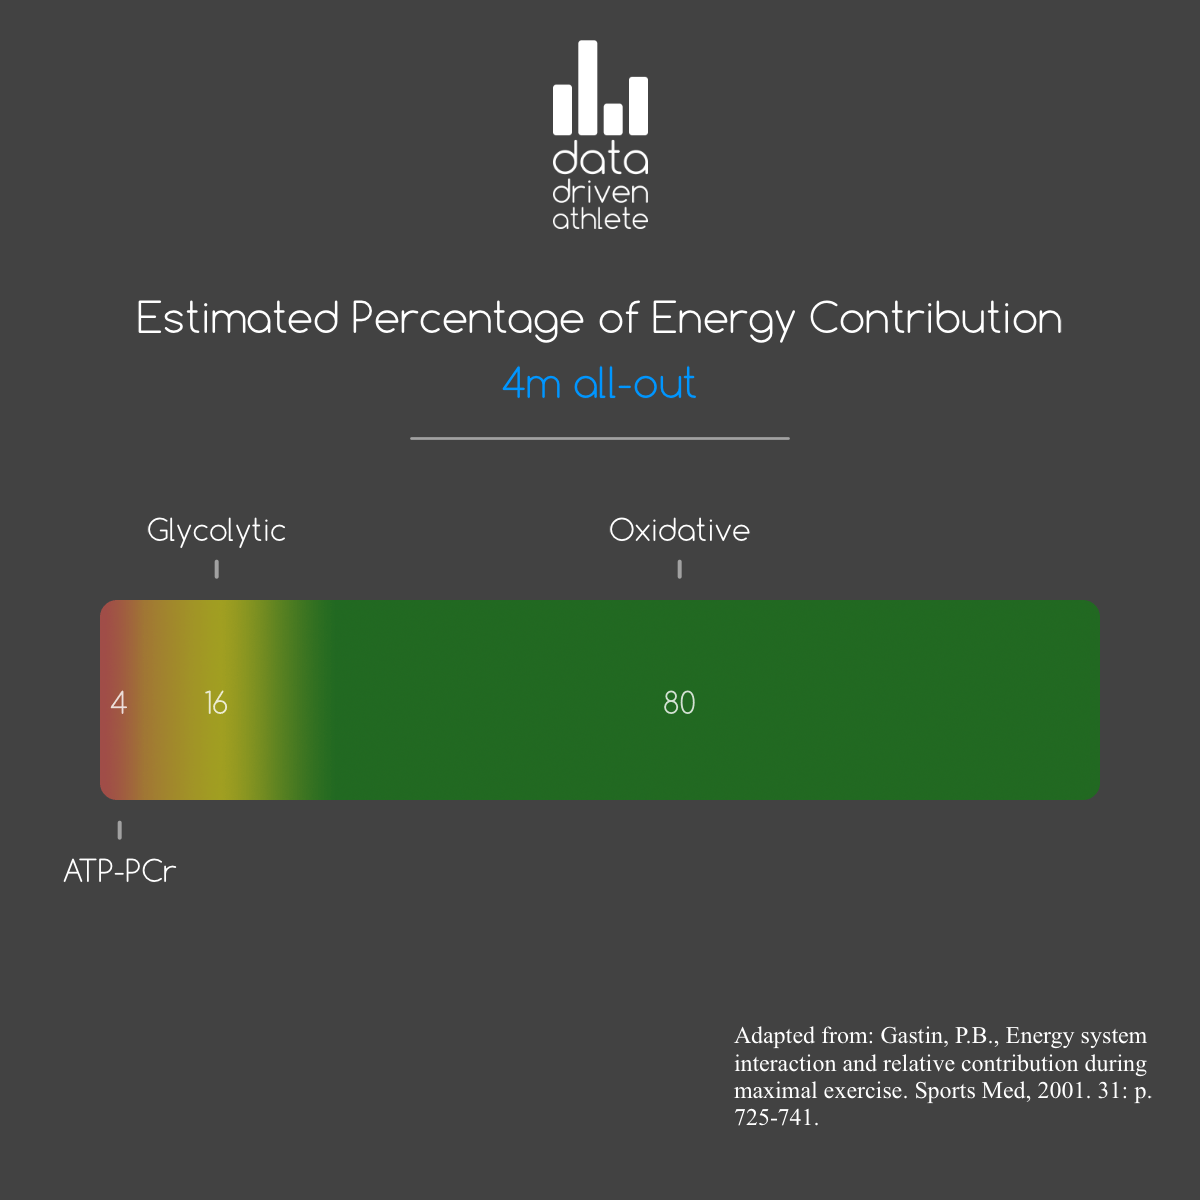 This graphic highlights the estimated energy system contribution to an all-out 4m effort